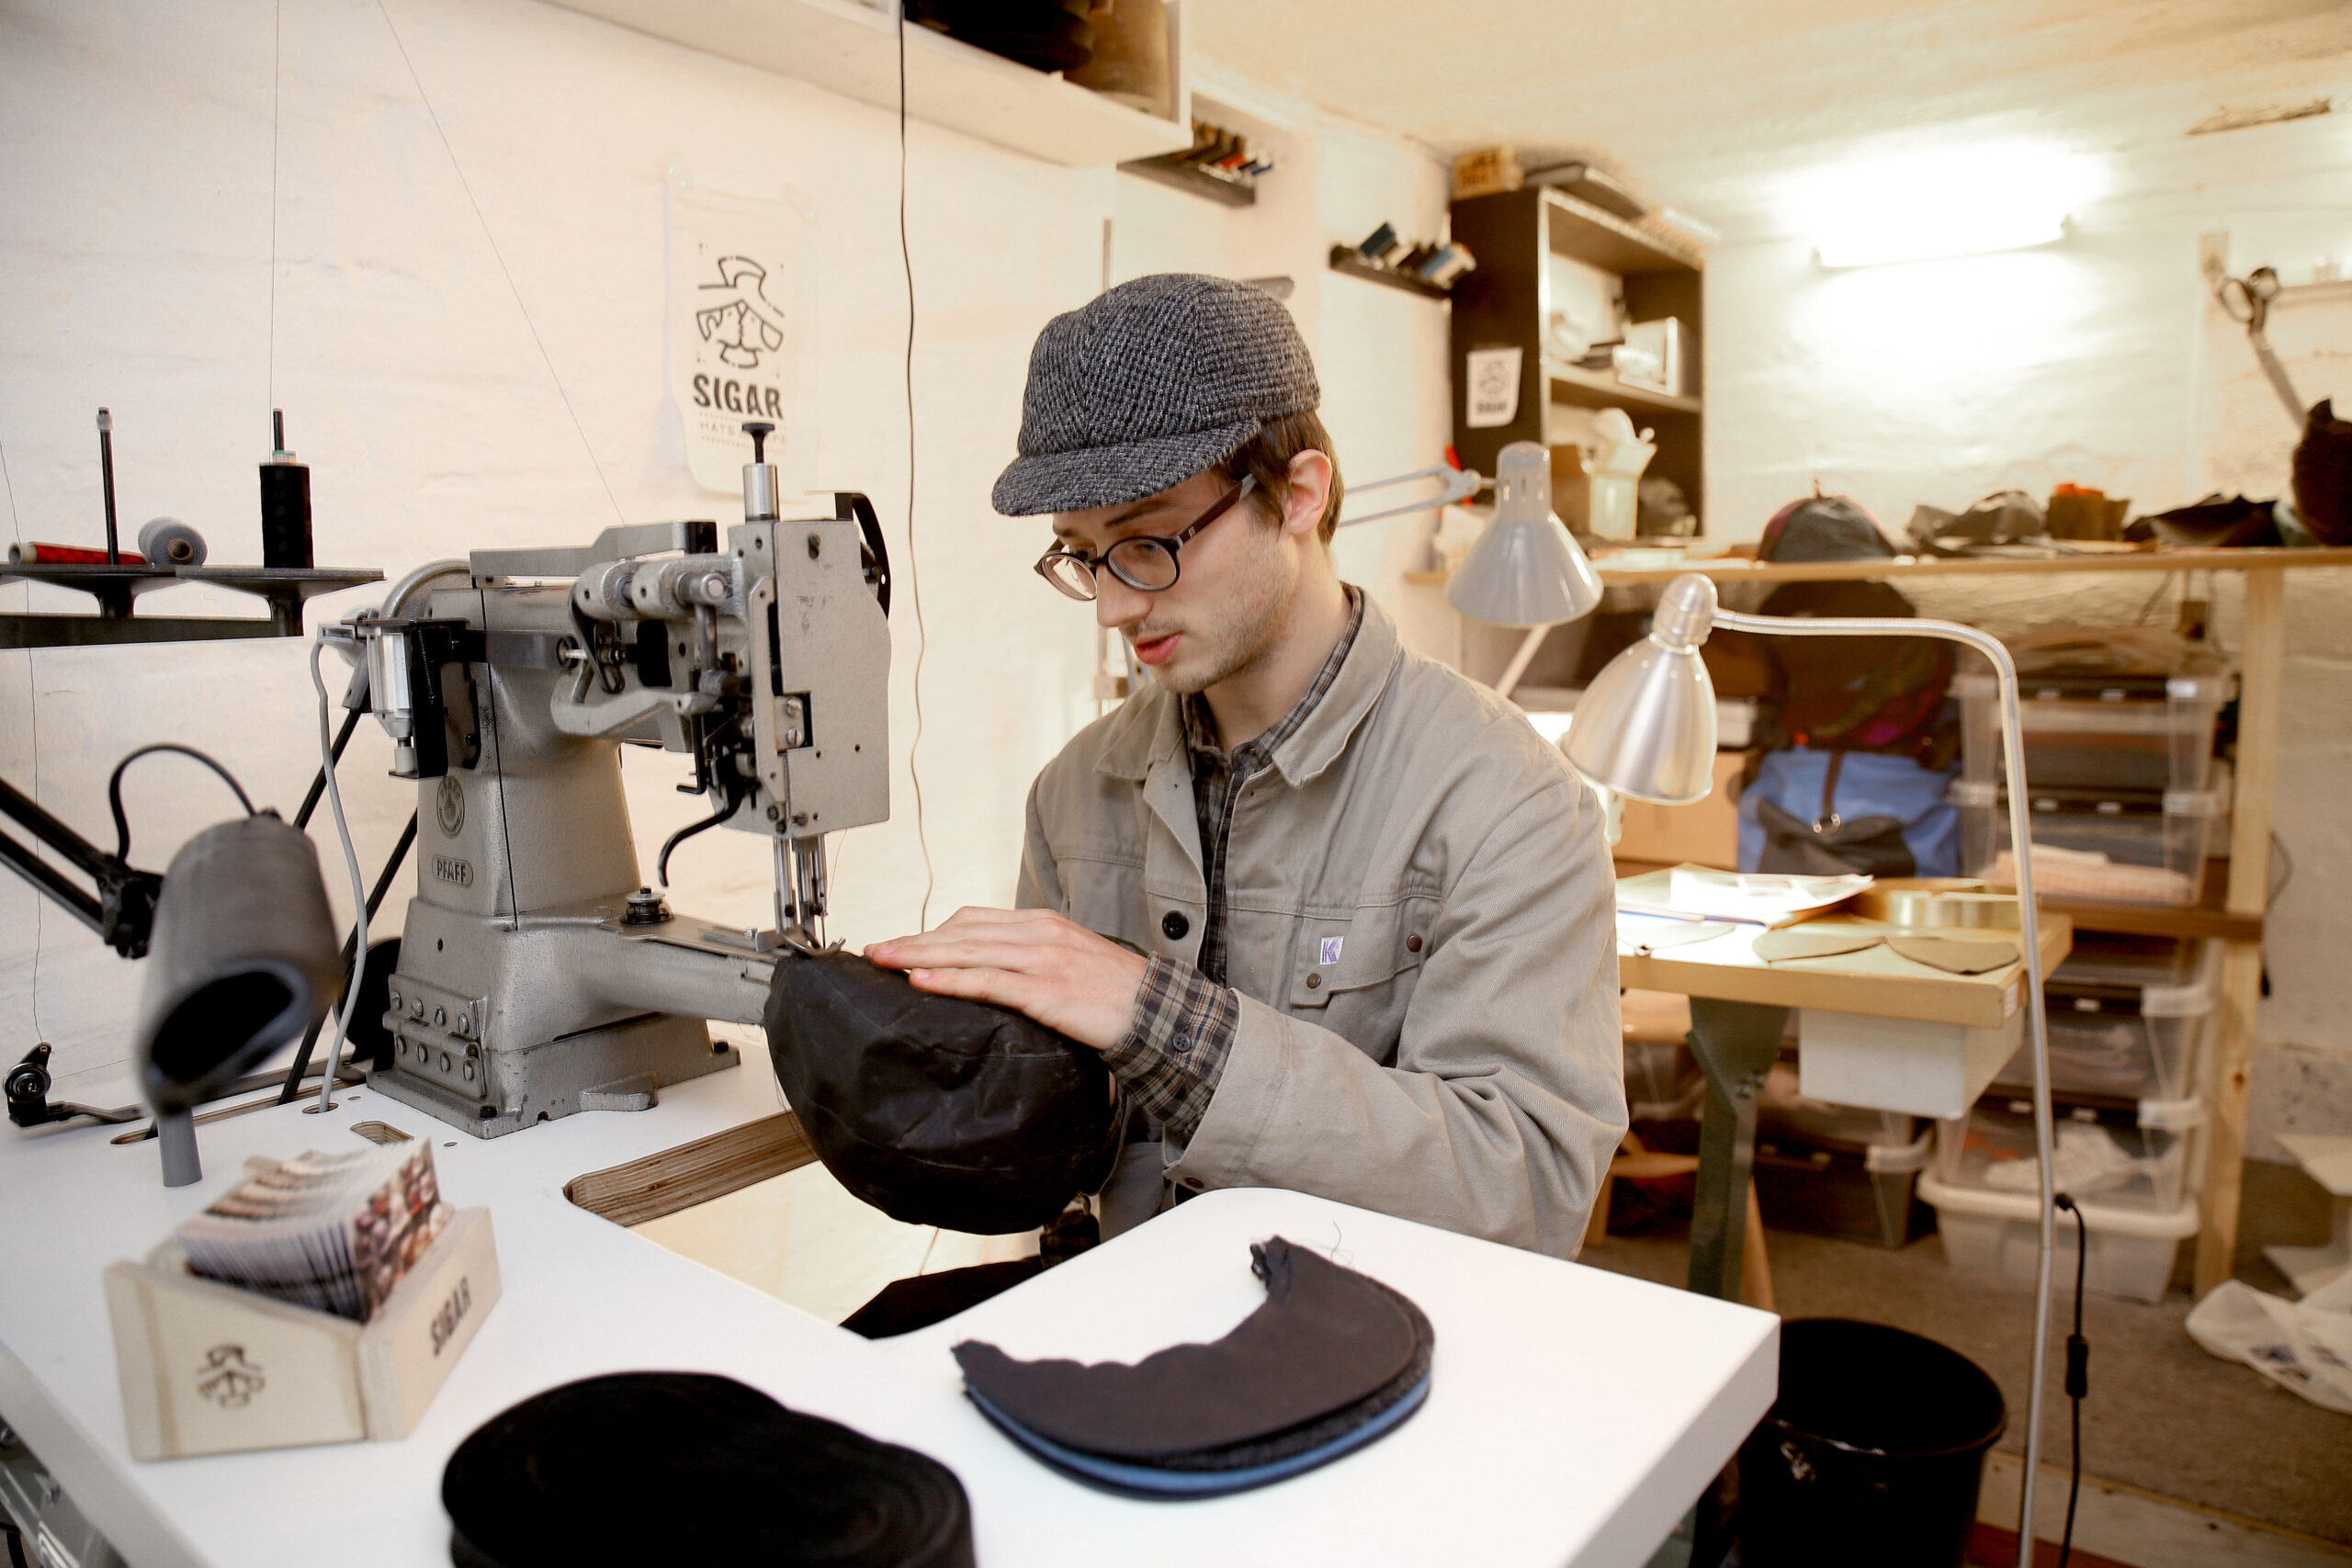 Silas sewing a cap on a freearm industrial sewingmachine